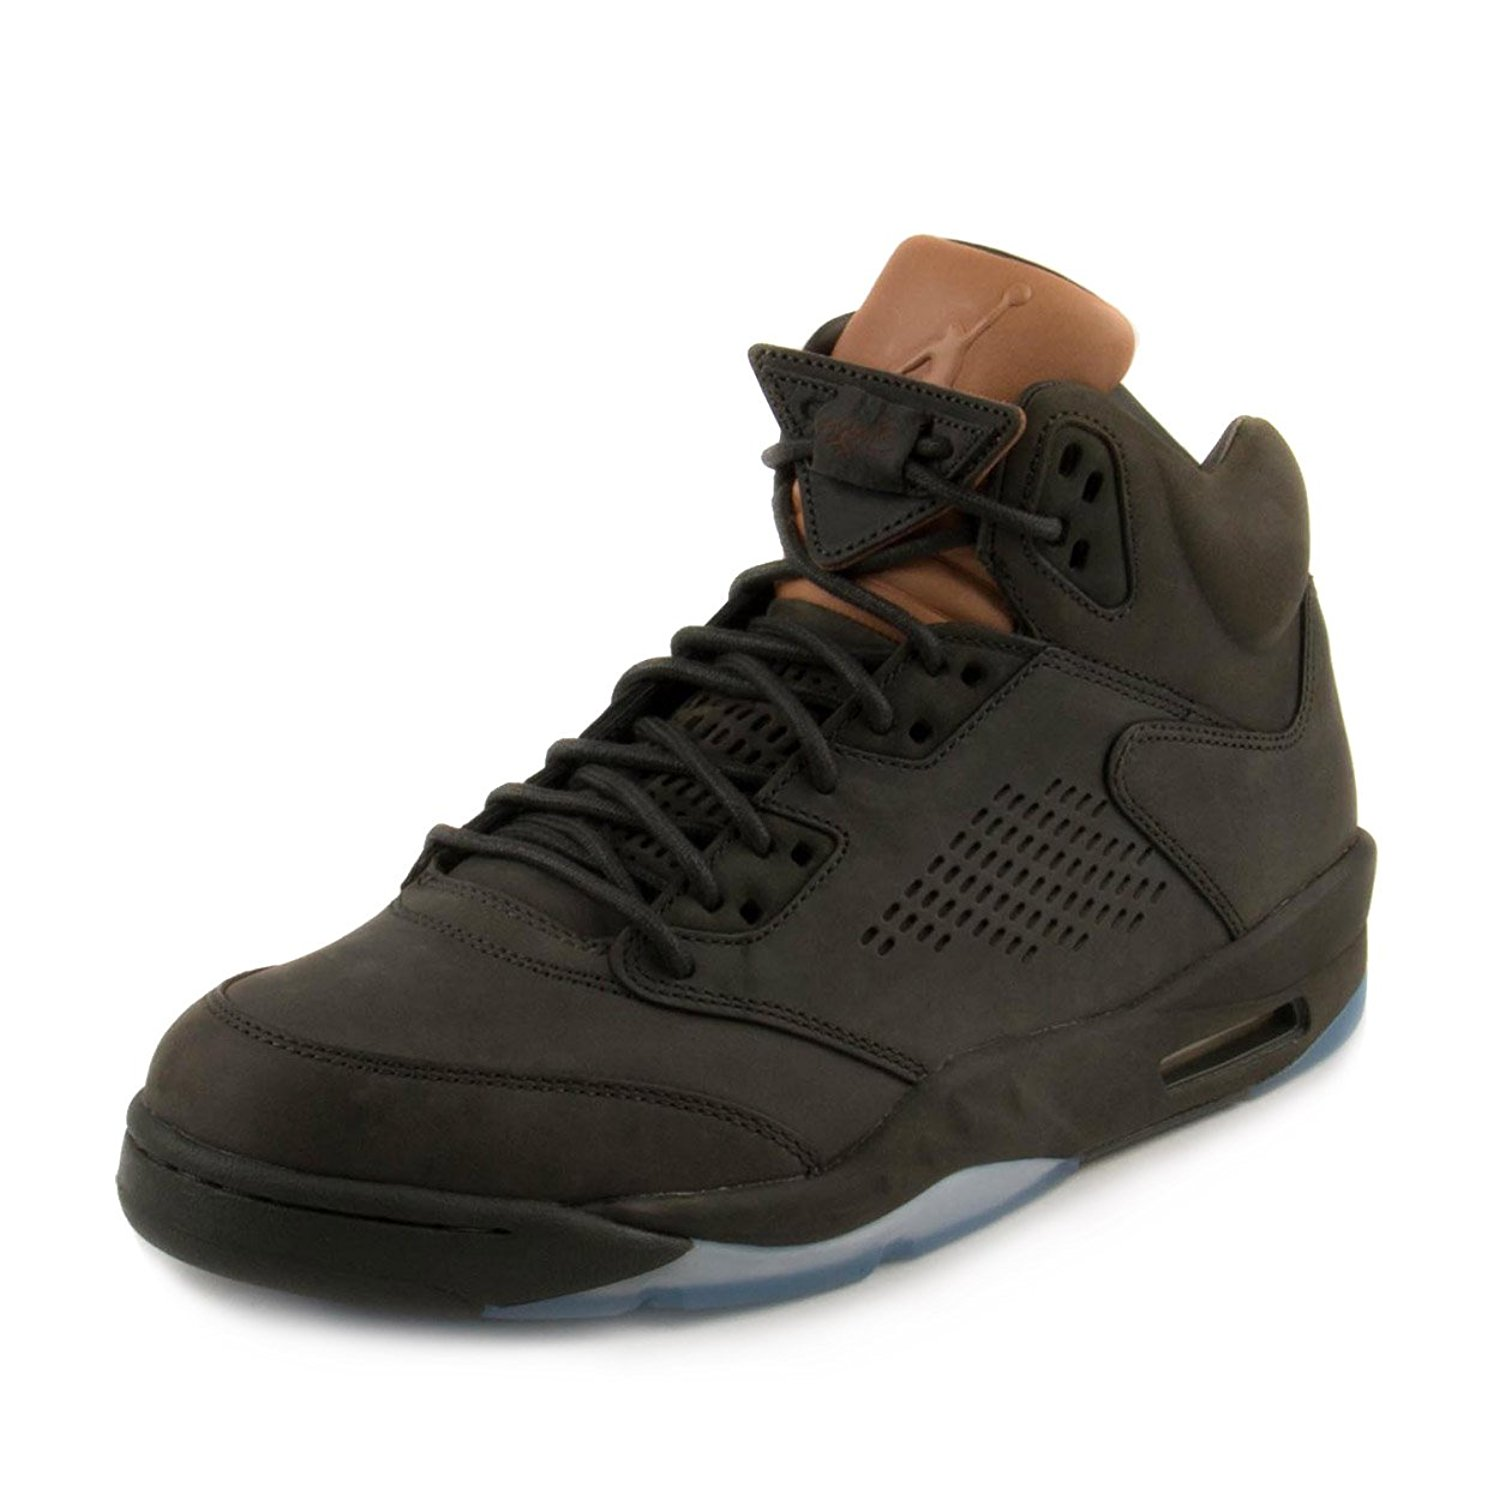 3bef9b6148019b Get Quotations · Jordan Men Air Jordan 5 Retro Premium sequoia  sequoia-metallic gold